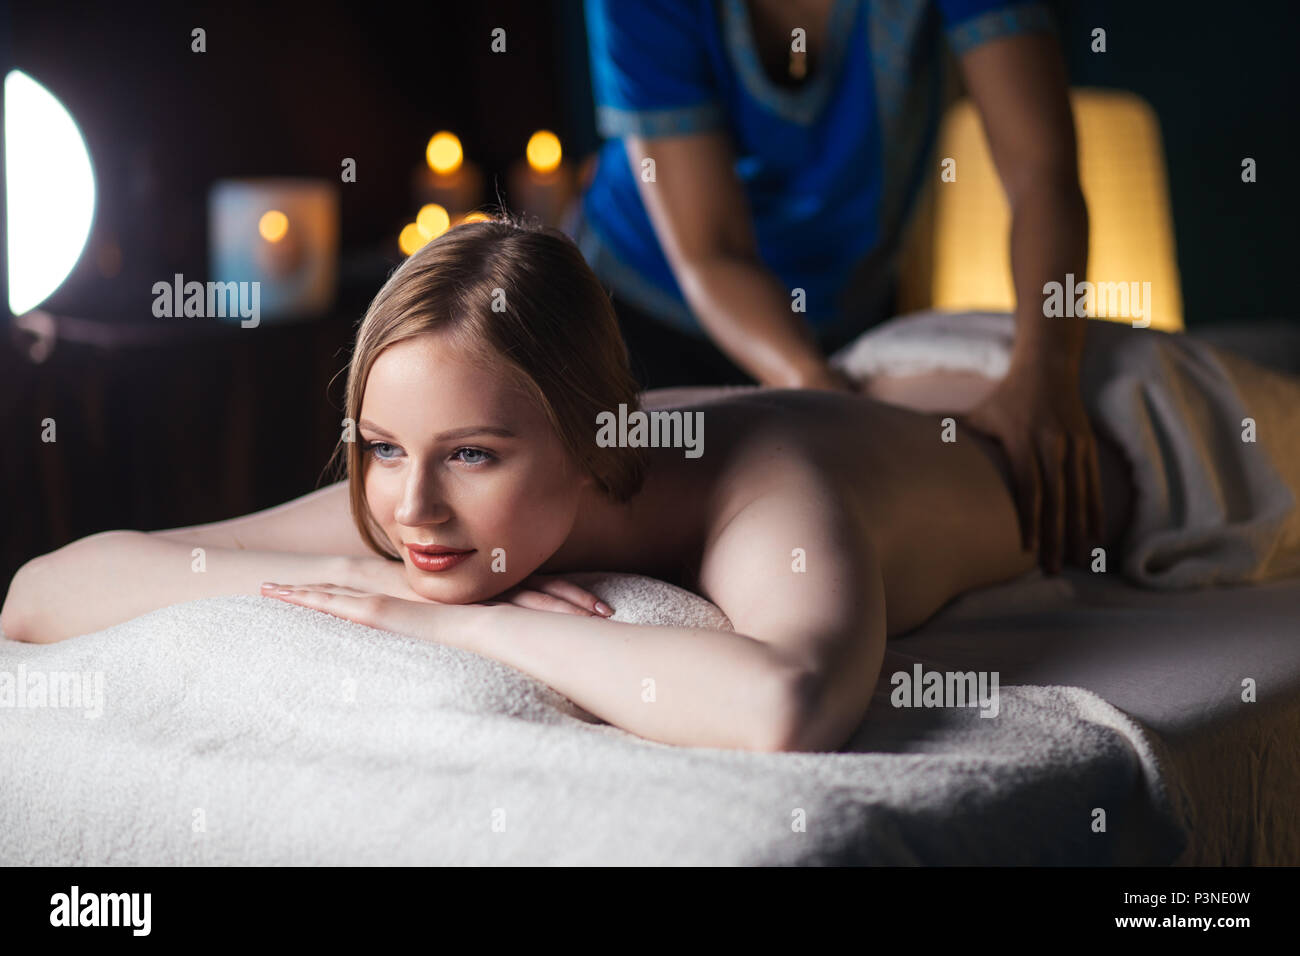 Hands massaging the back, lying on the belly of a woman - Stock Image